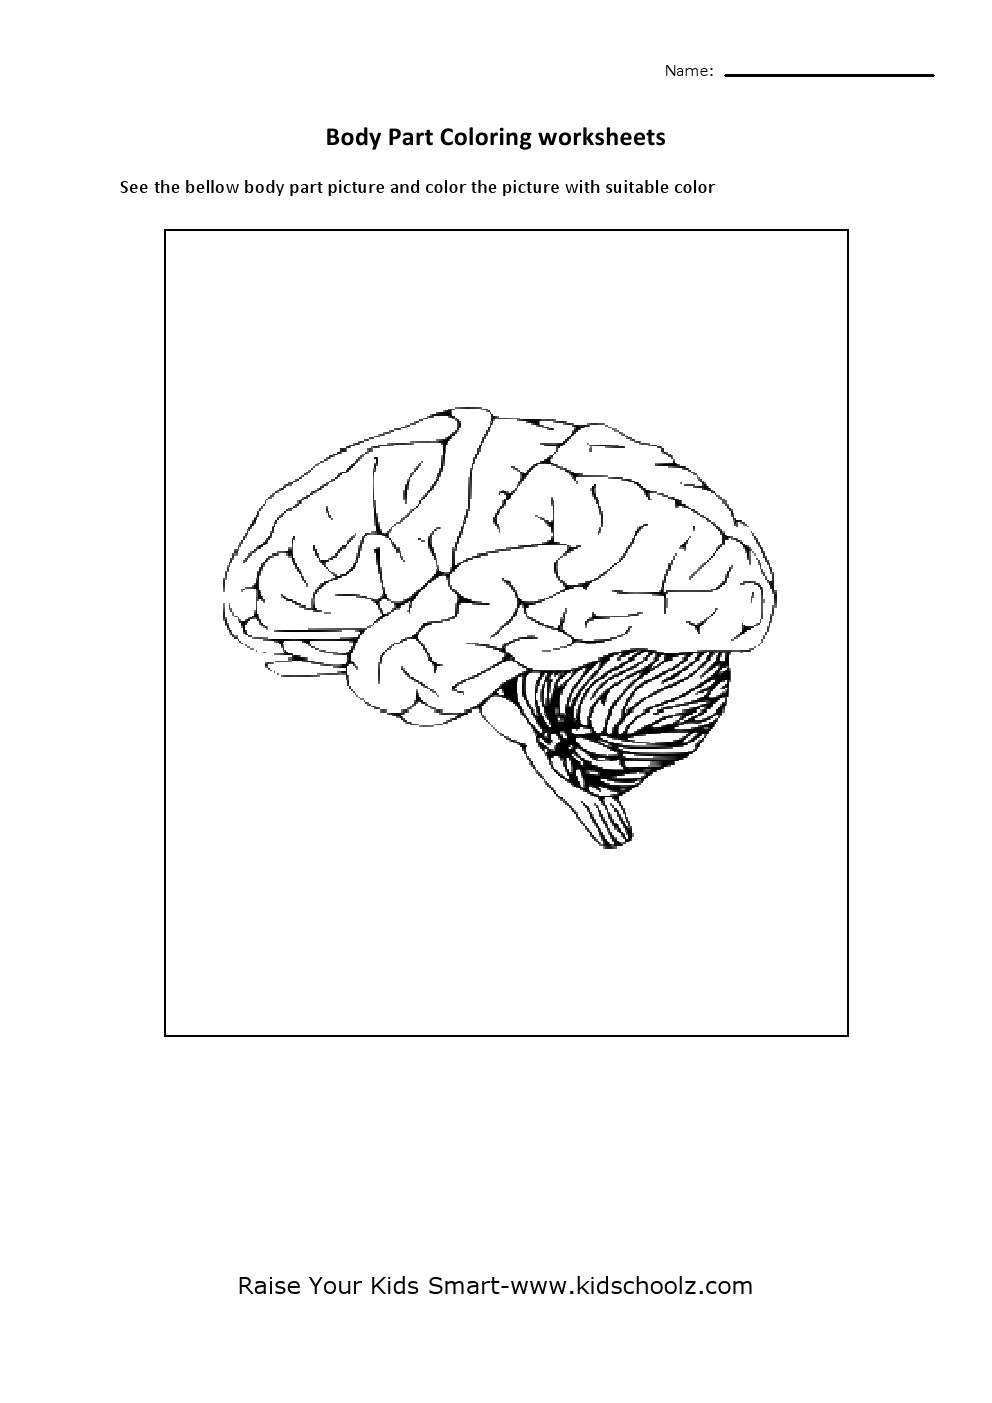 Sheep Brain Coloring Pages